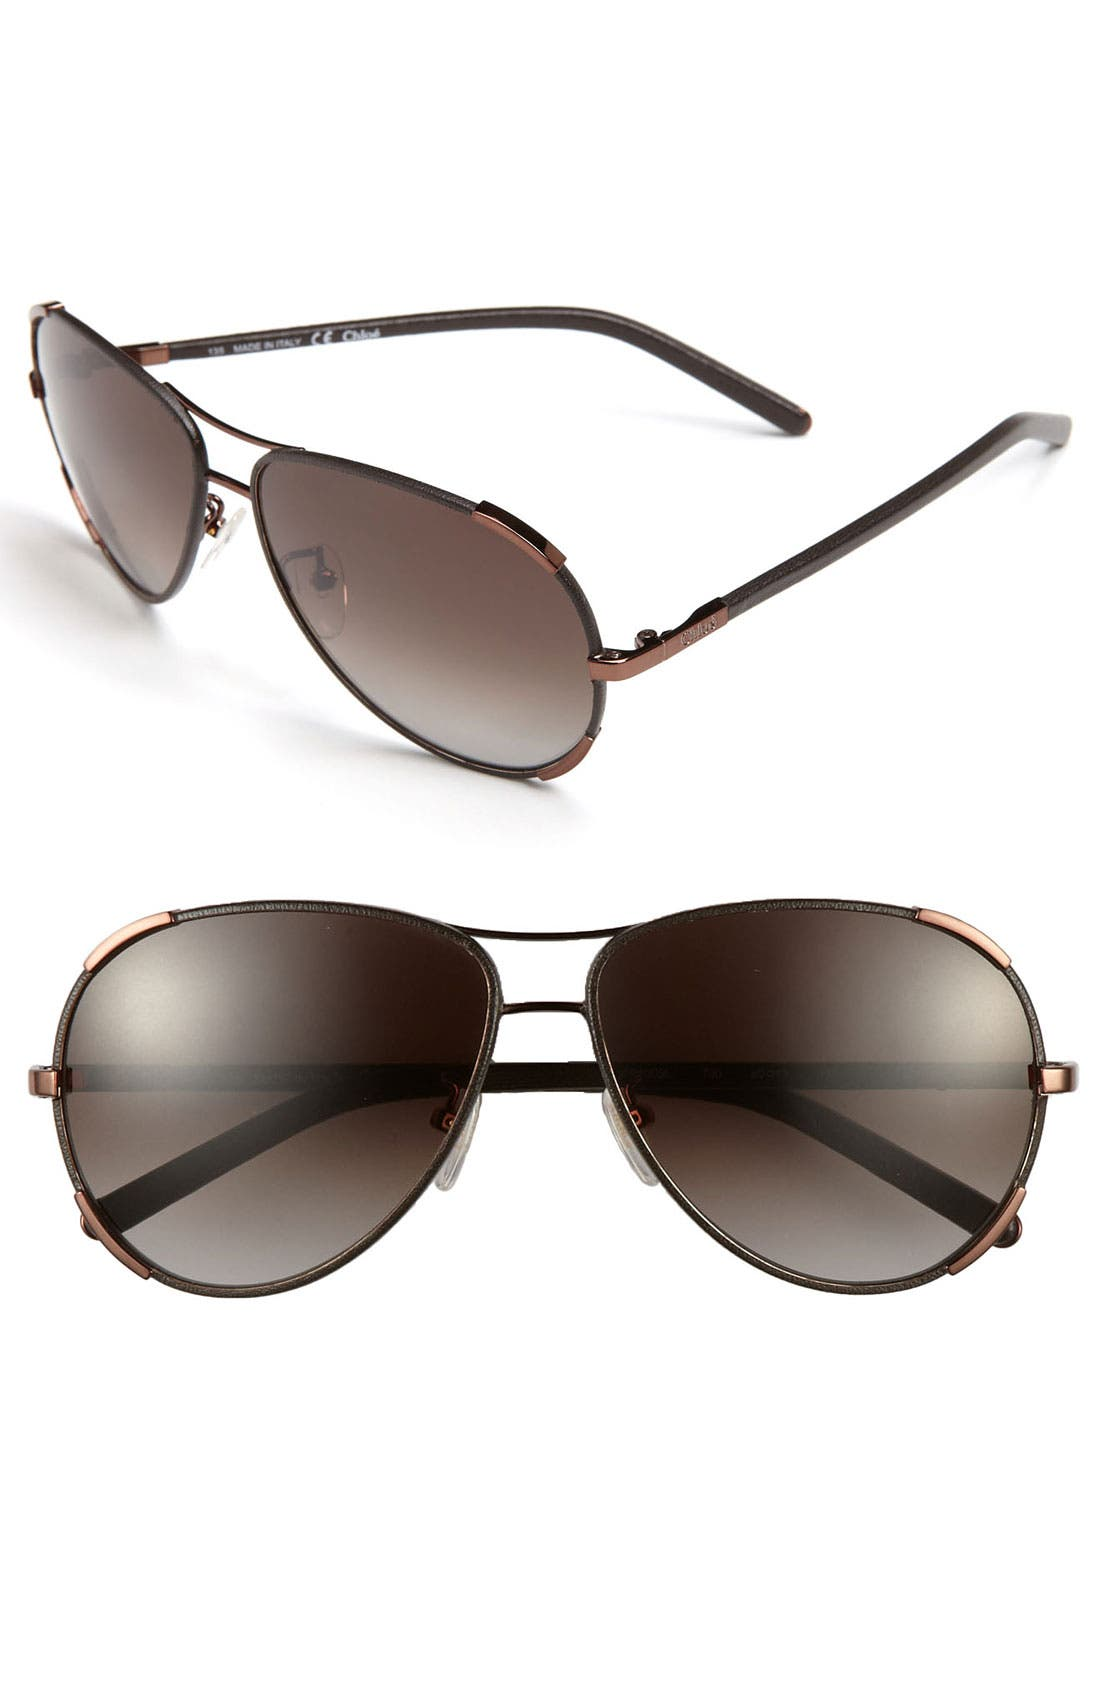 Alternate Image 1 Selected - Chloé 60mm Aviator Sunglasses